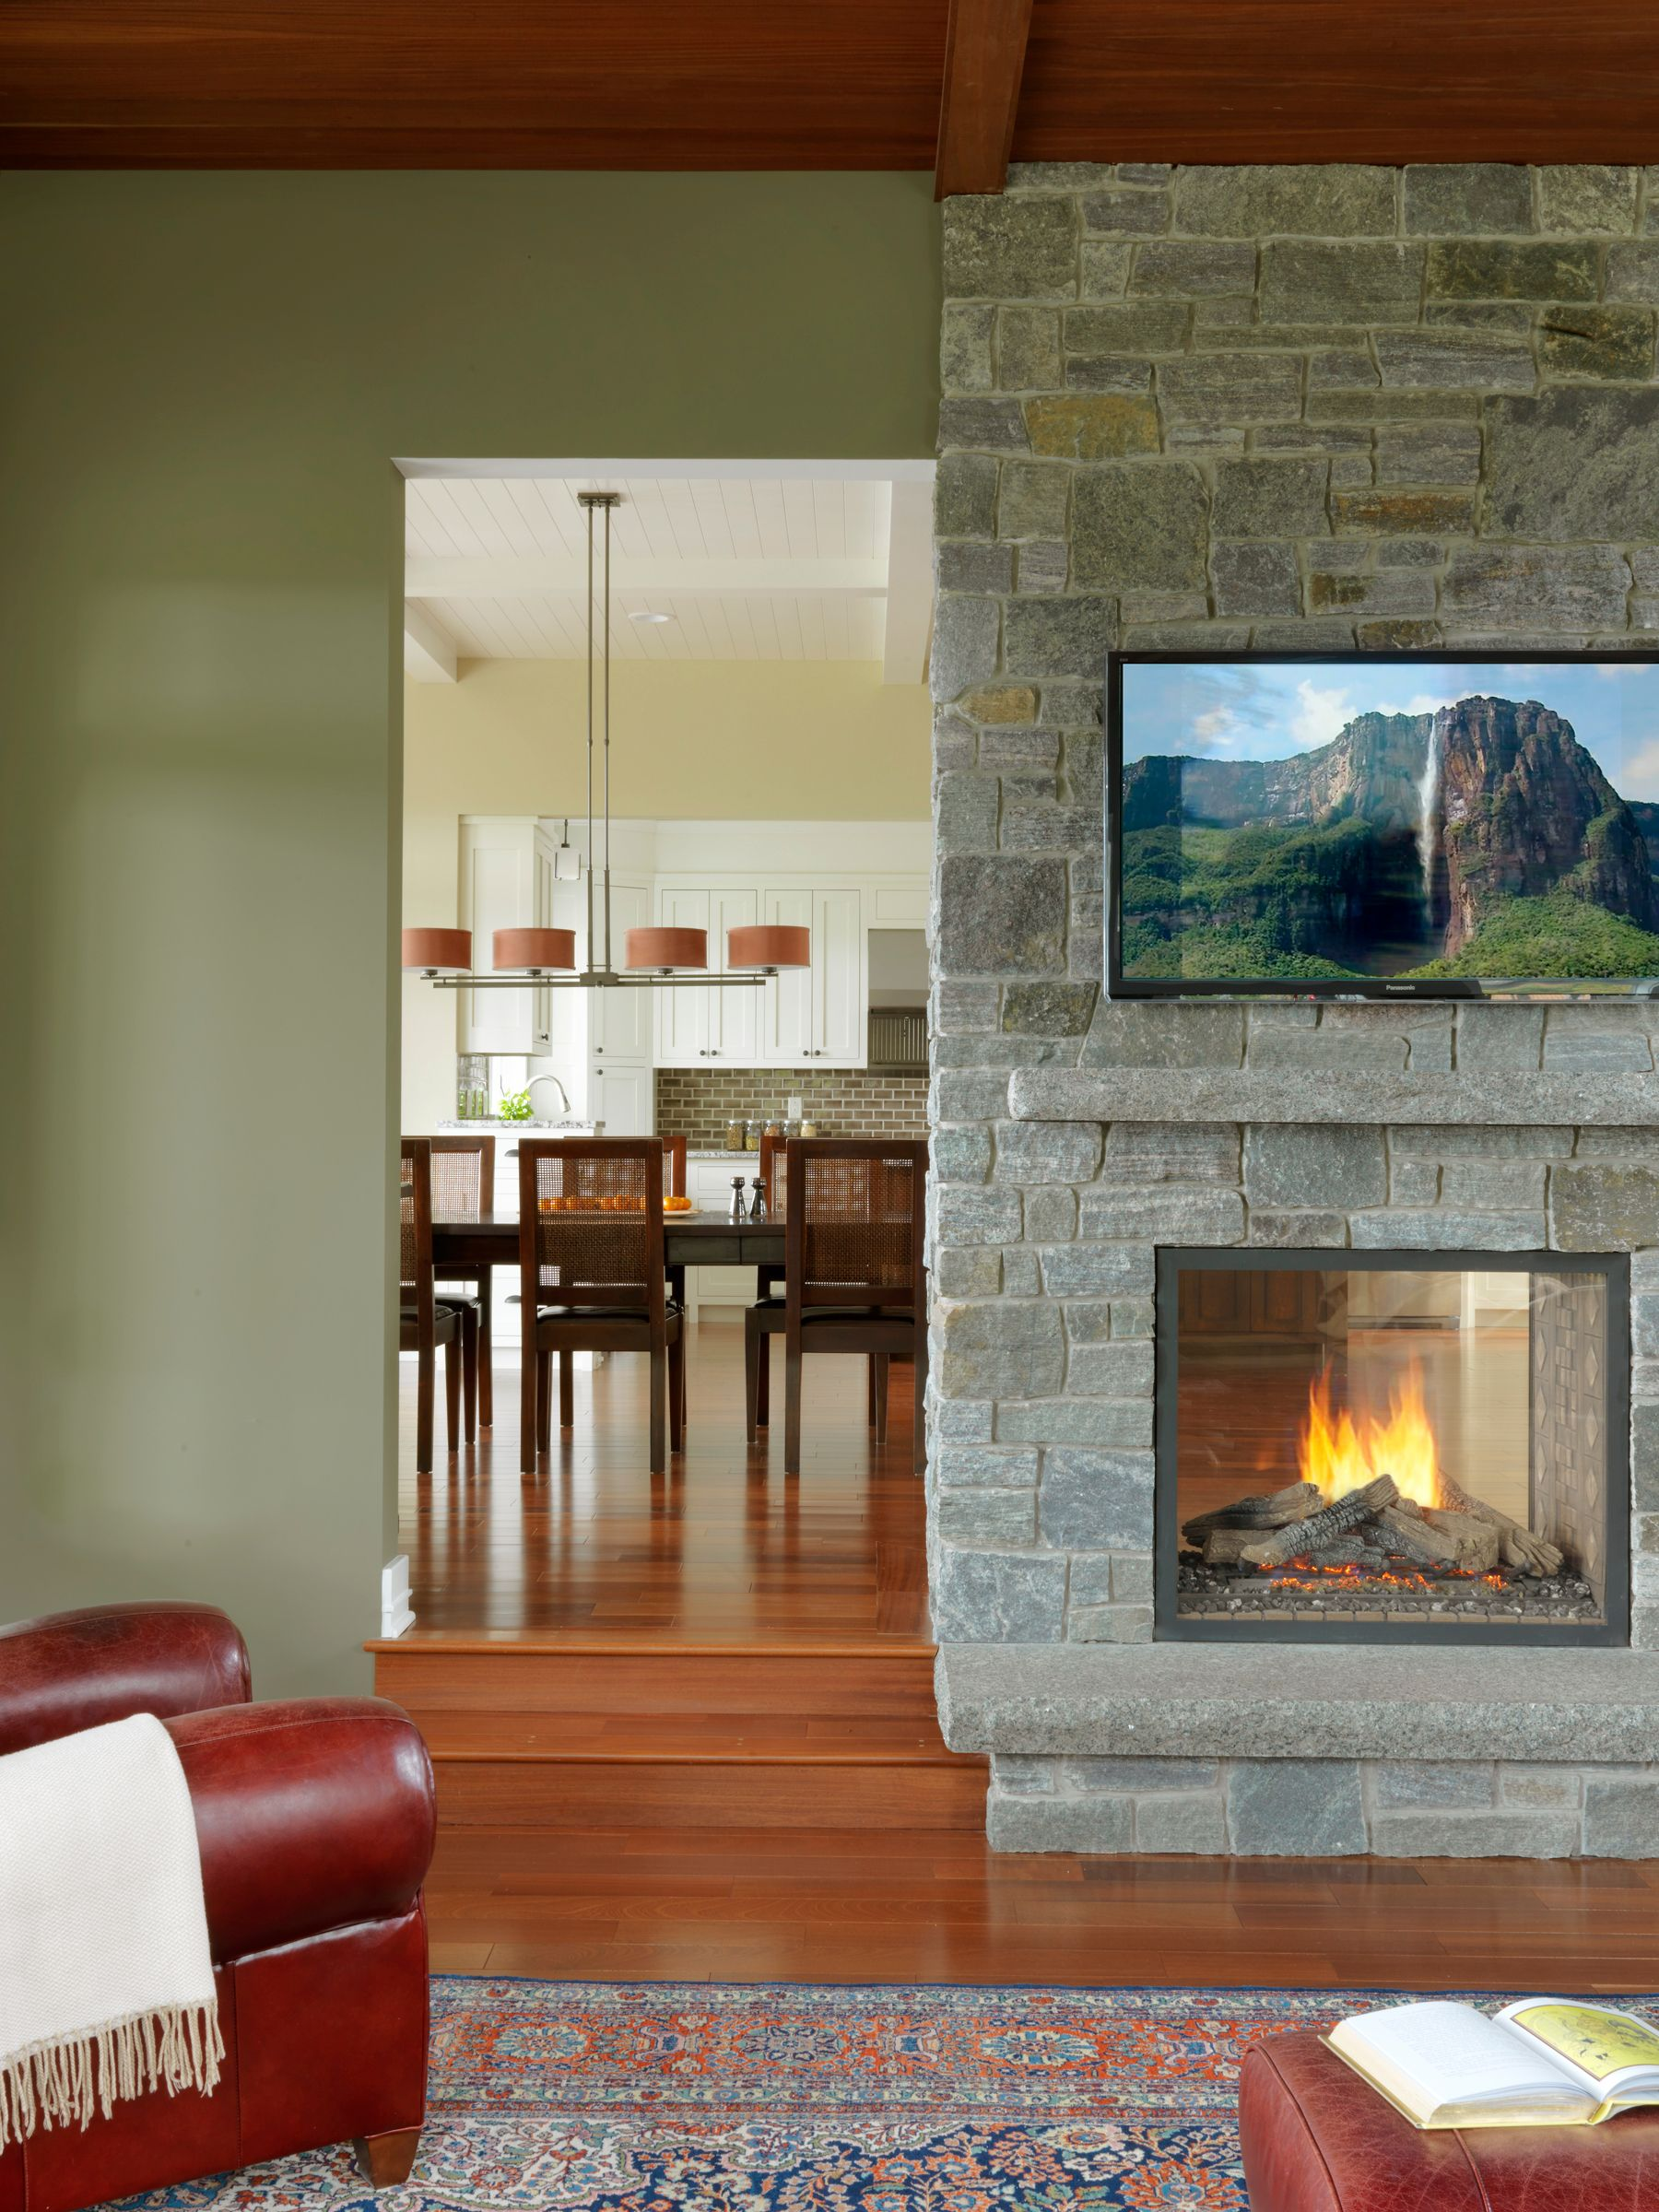 This Double Sided Fireplace Shares Its Cozy Warmth Equally Between A Sunken Living Room And